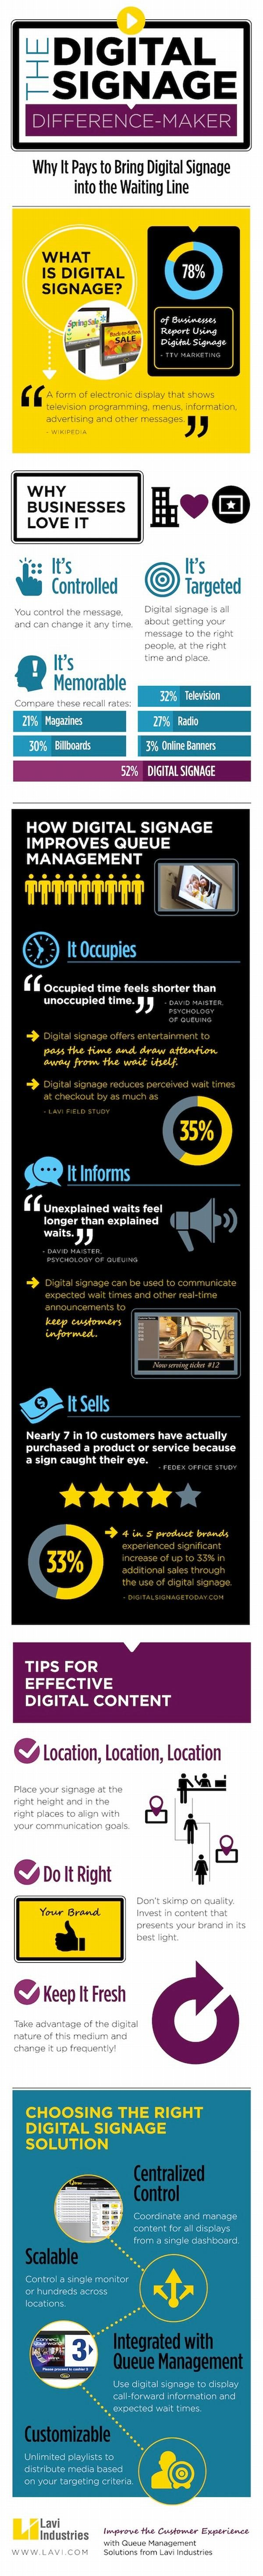 """""""How Digital Signage Improves Queue Management"""" Re-Pinned by The Automotive Broadcasting Network.  Visit our website to learn more about our automotive digital signage solutions for car dealerships: http://www.abnetwork.com"""